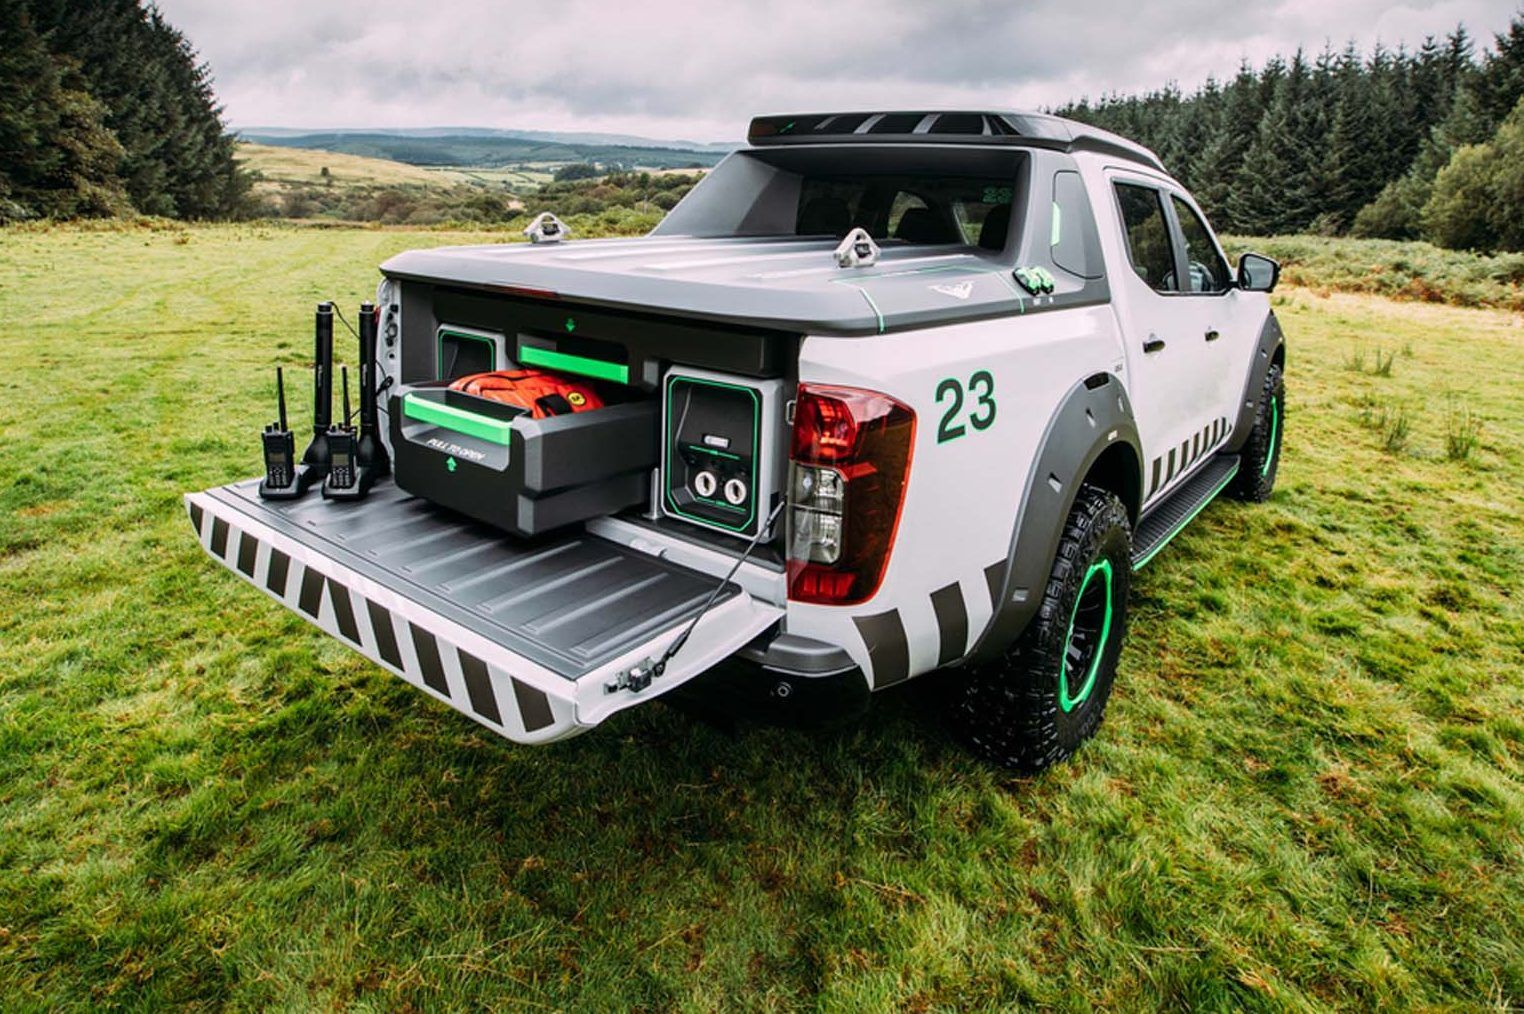 Nissan has debuted the navara enguard concept its vision for a future rescue truck